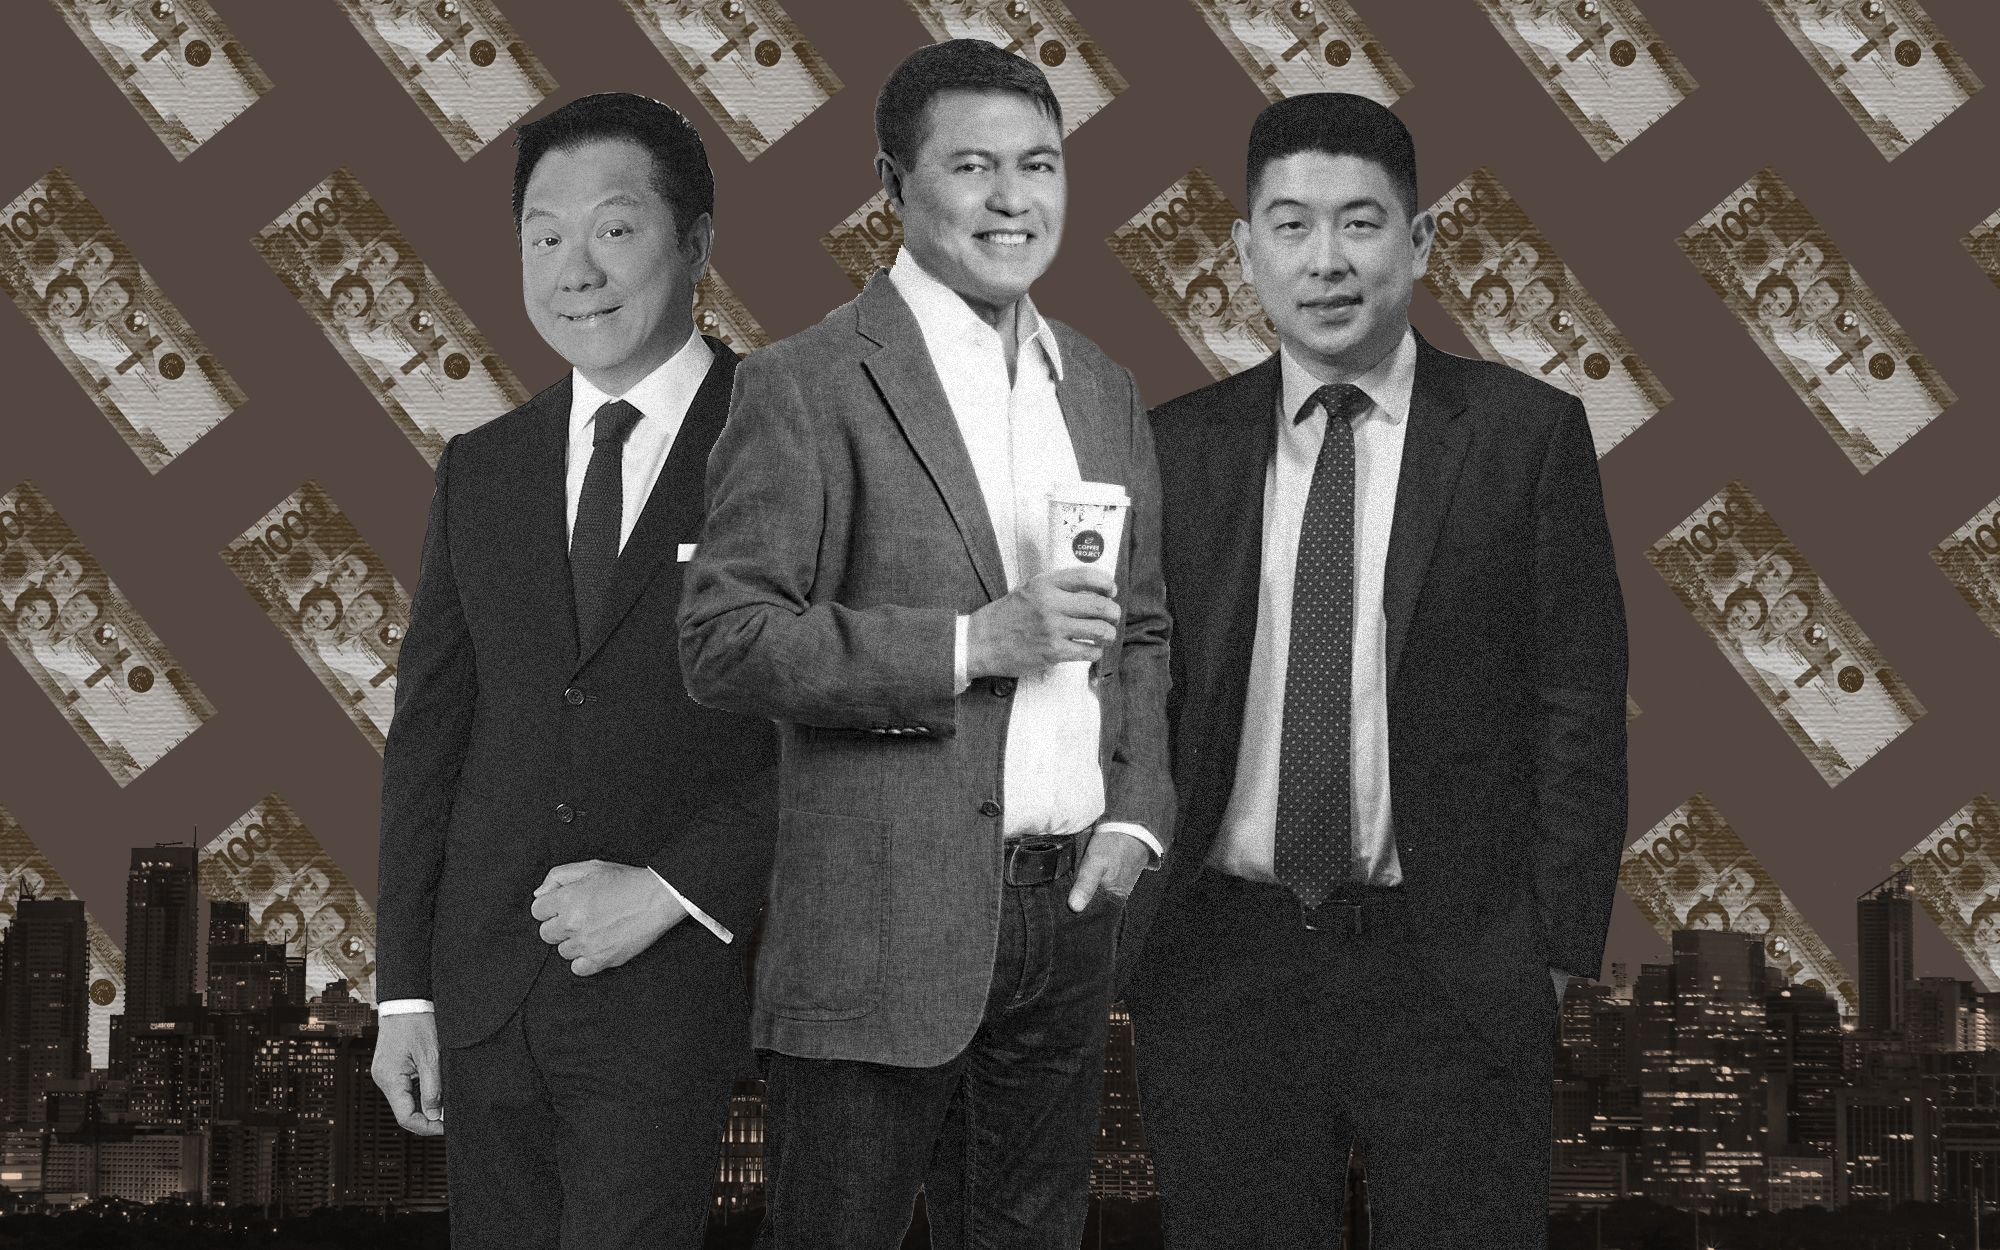 Who Are The Richest Filipino Billionaires Included In The 2021 Annual Forbes List?